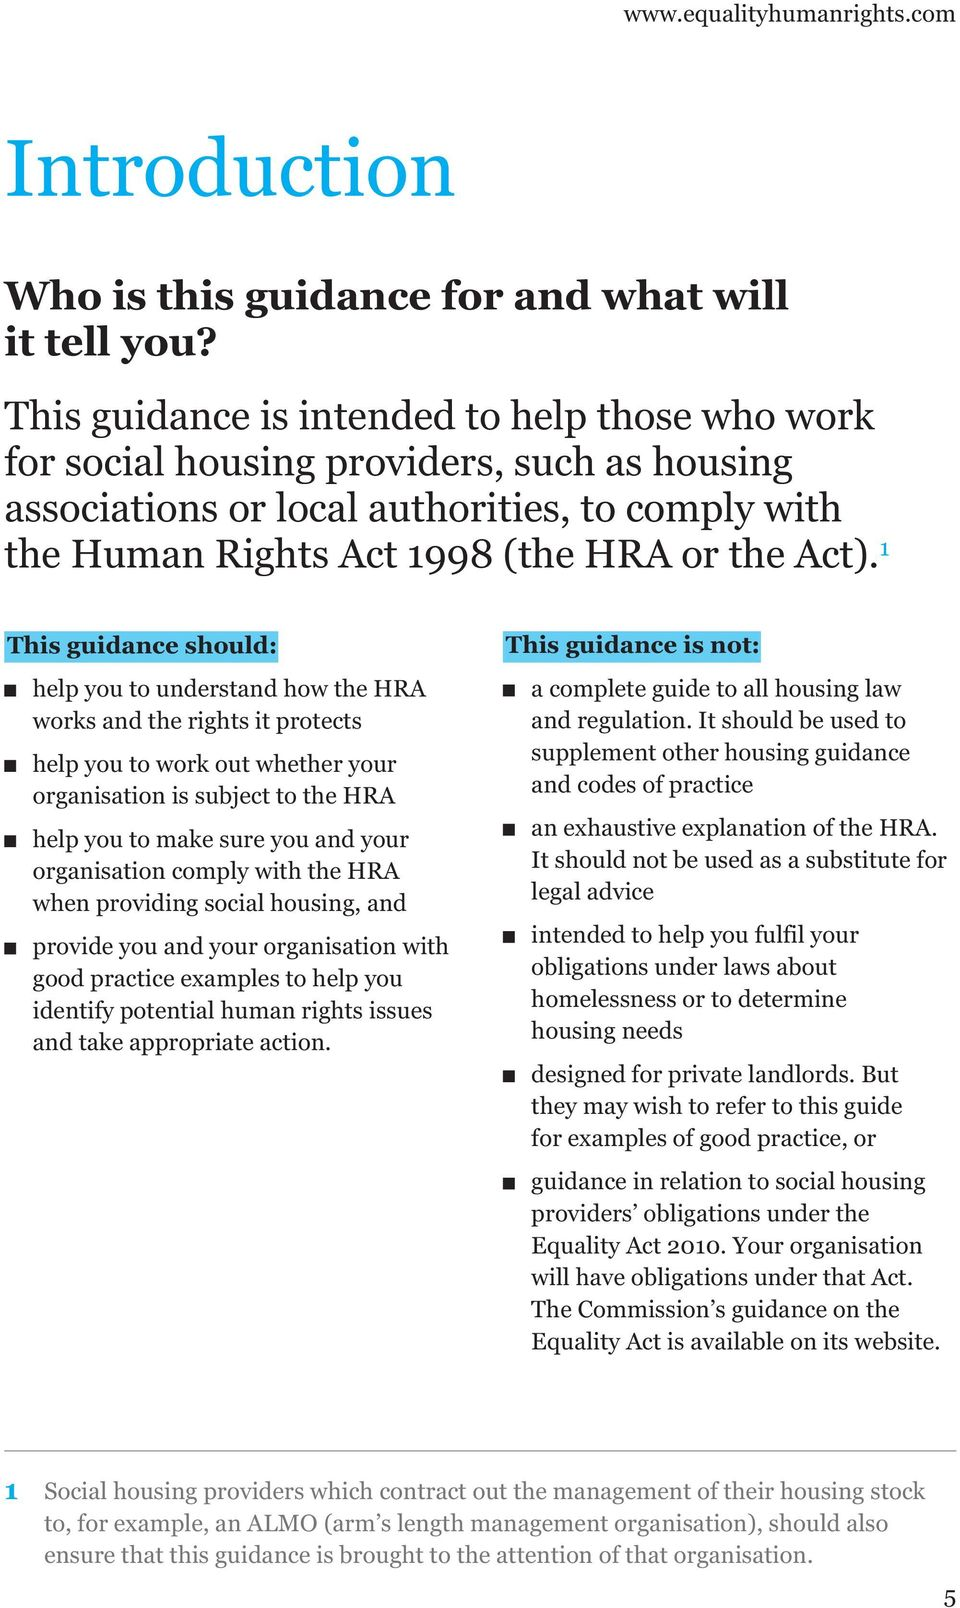 1 This guidance should: help you to understand how the HRA works and the rights it protects help you to work out whether your organisation is subject to the HRA help you to make sure you and your